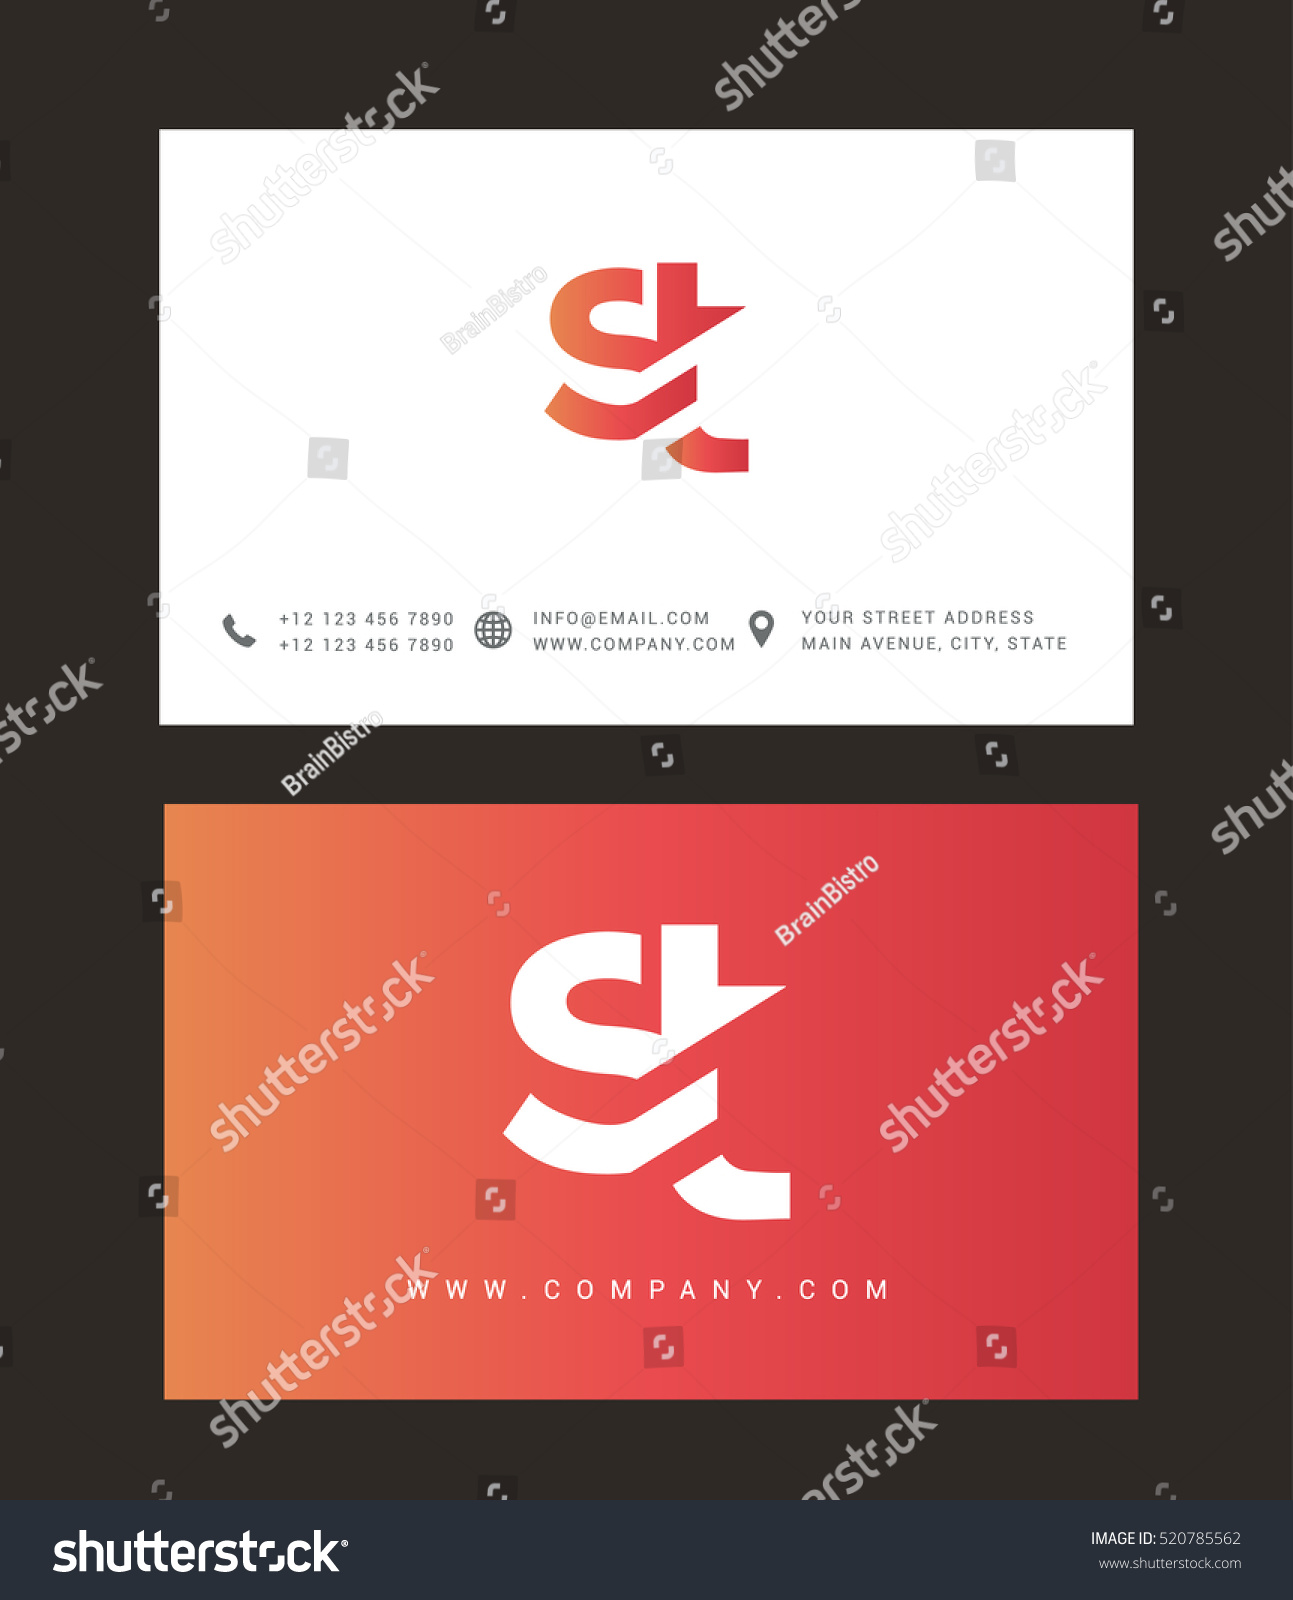 Nice 1 Inch Hexagon Template Thick 1 Page Resumes Examples Round 1.25 Button Template 10 Best Resumes Youthful 10 Tips To Making A Resume Brown100 Dollar Bill Template S T Letters Logo Business Card Stock Vector 520785562   Shutterstock